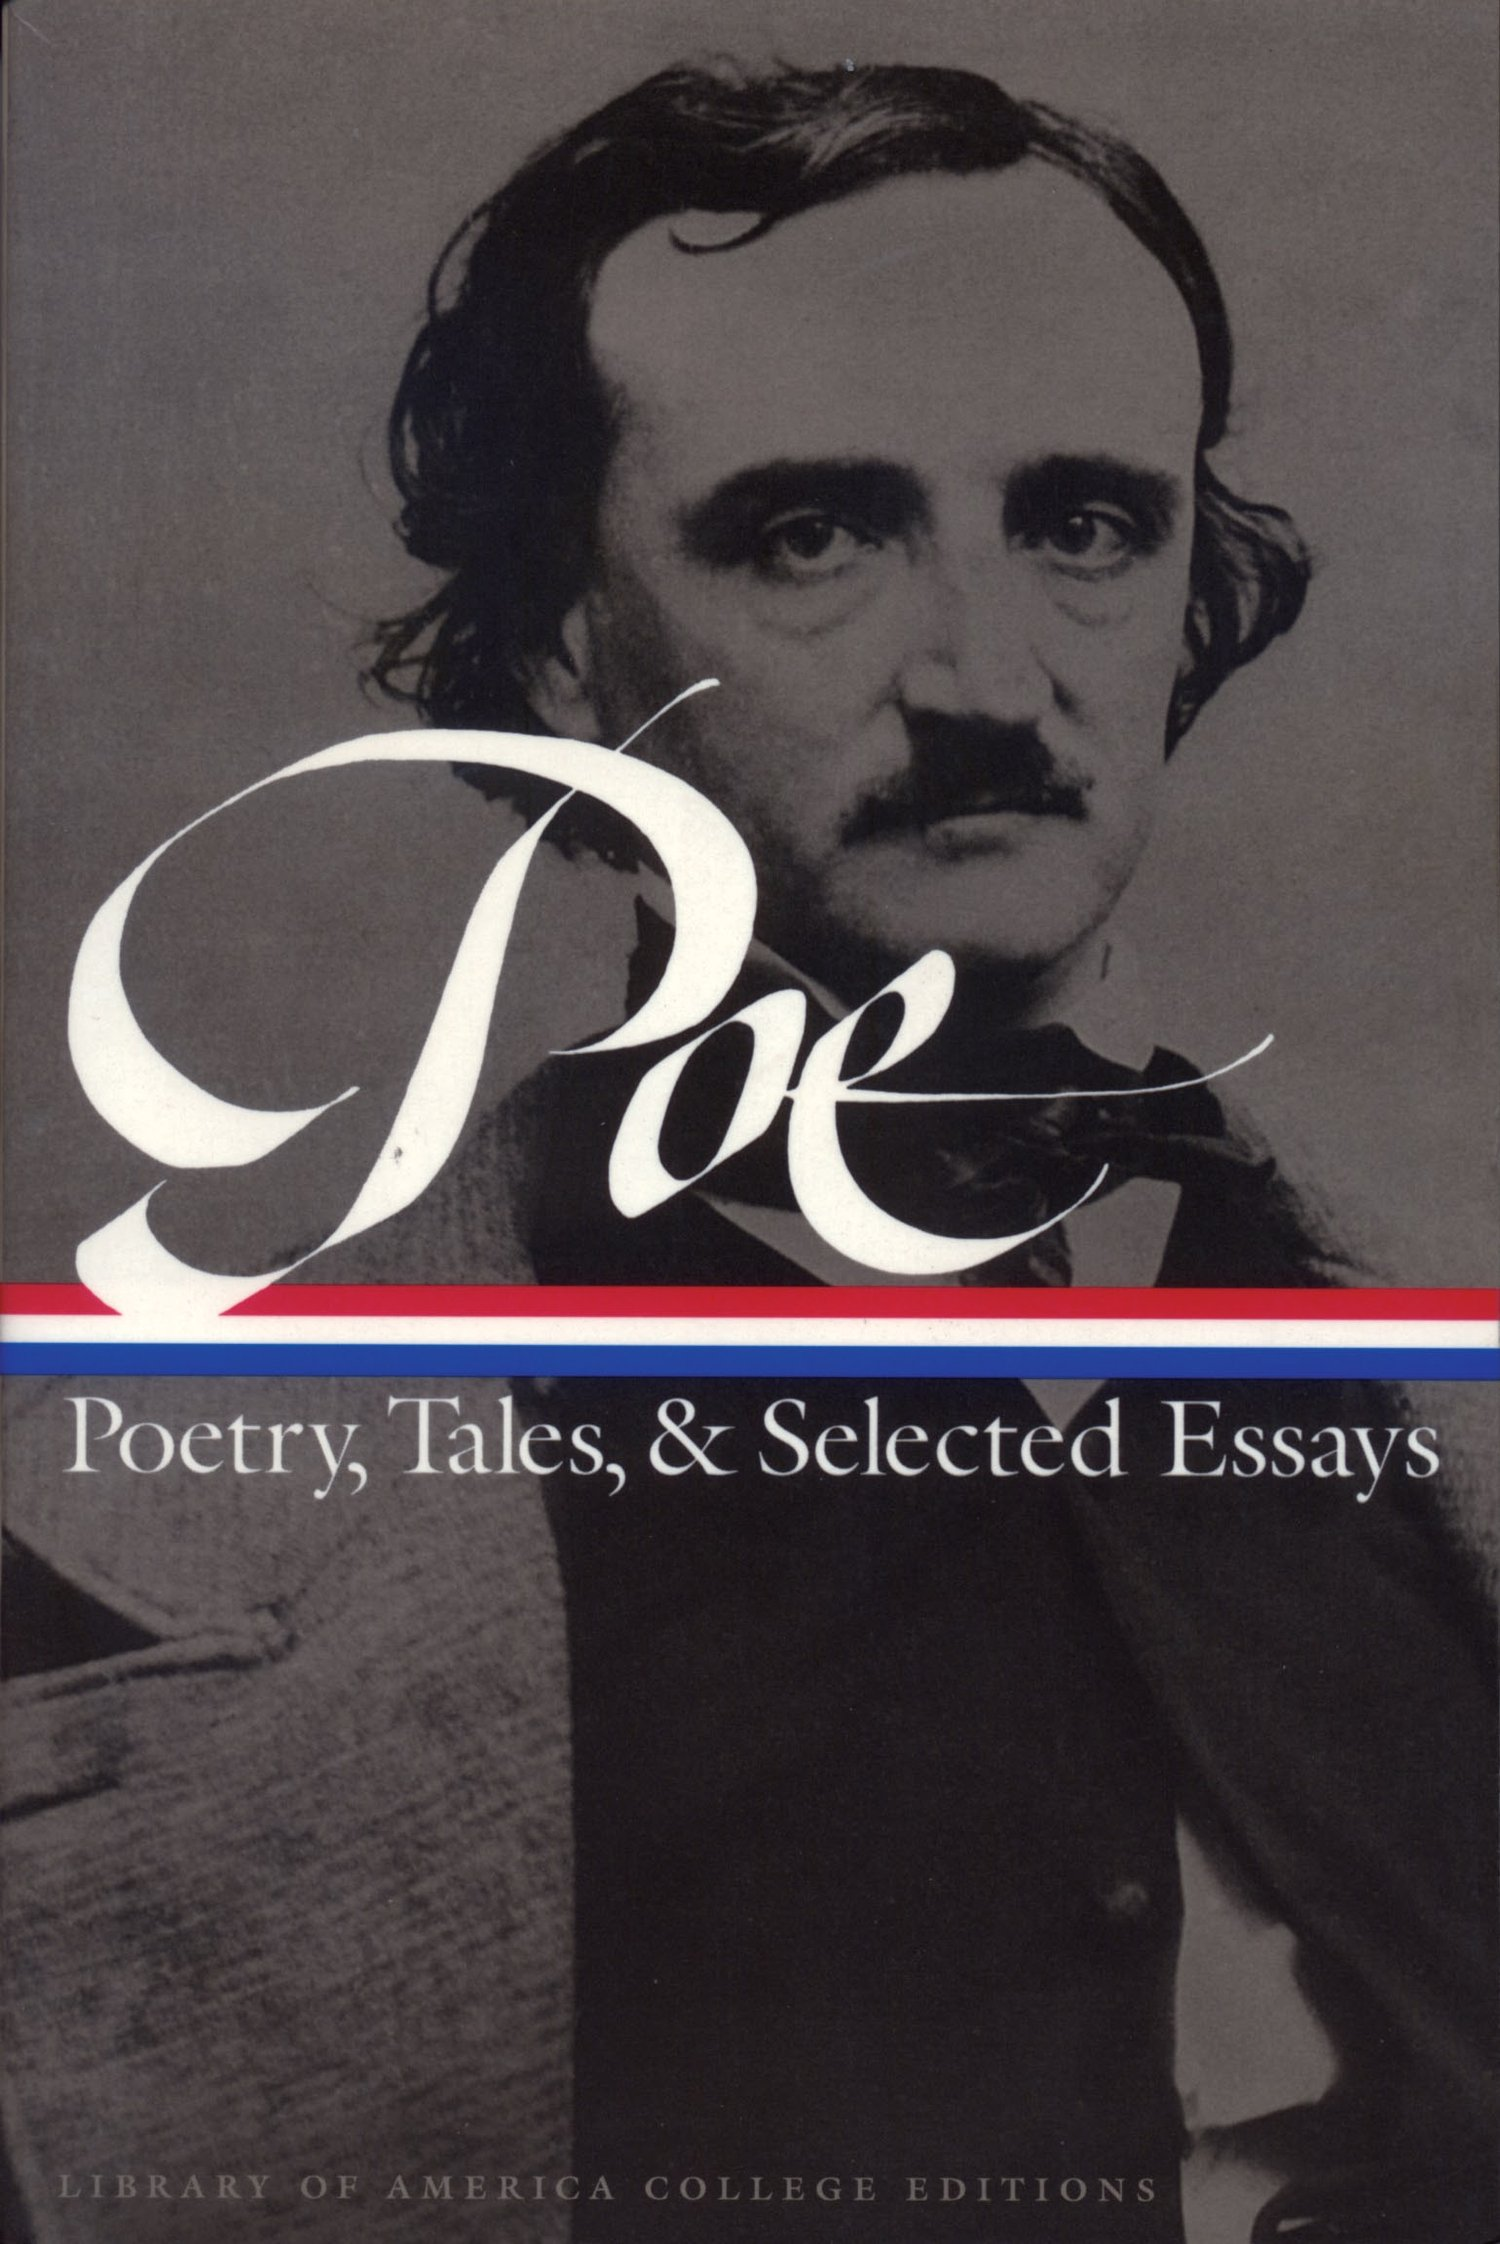 edgar allan poe poetry tales and selected essays library of  edgar allan poe poetry tales and selected essays library of america college editions edgar allan poe patrick f quinn g r thompson 9781883011383